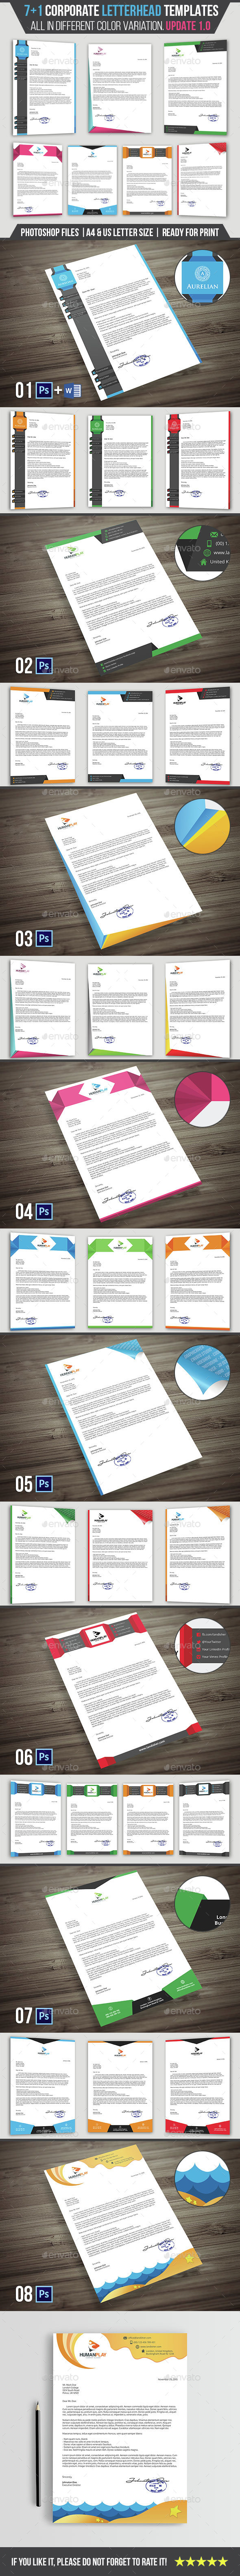 7+1 Corporate Letterhead Templates Pack - Stationery Print Templates